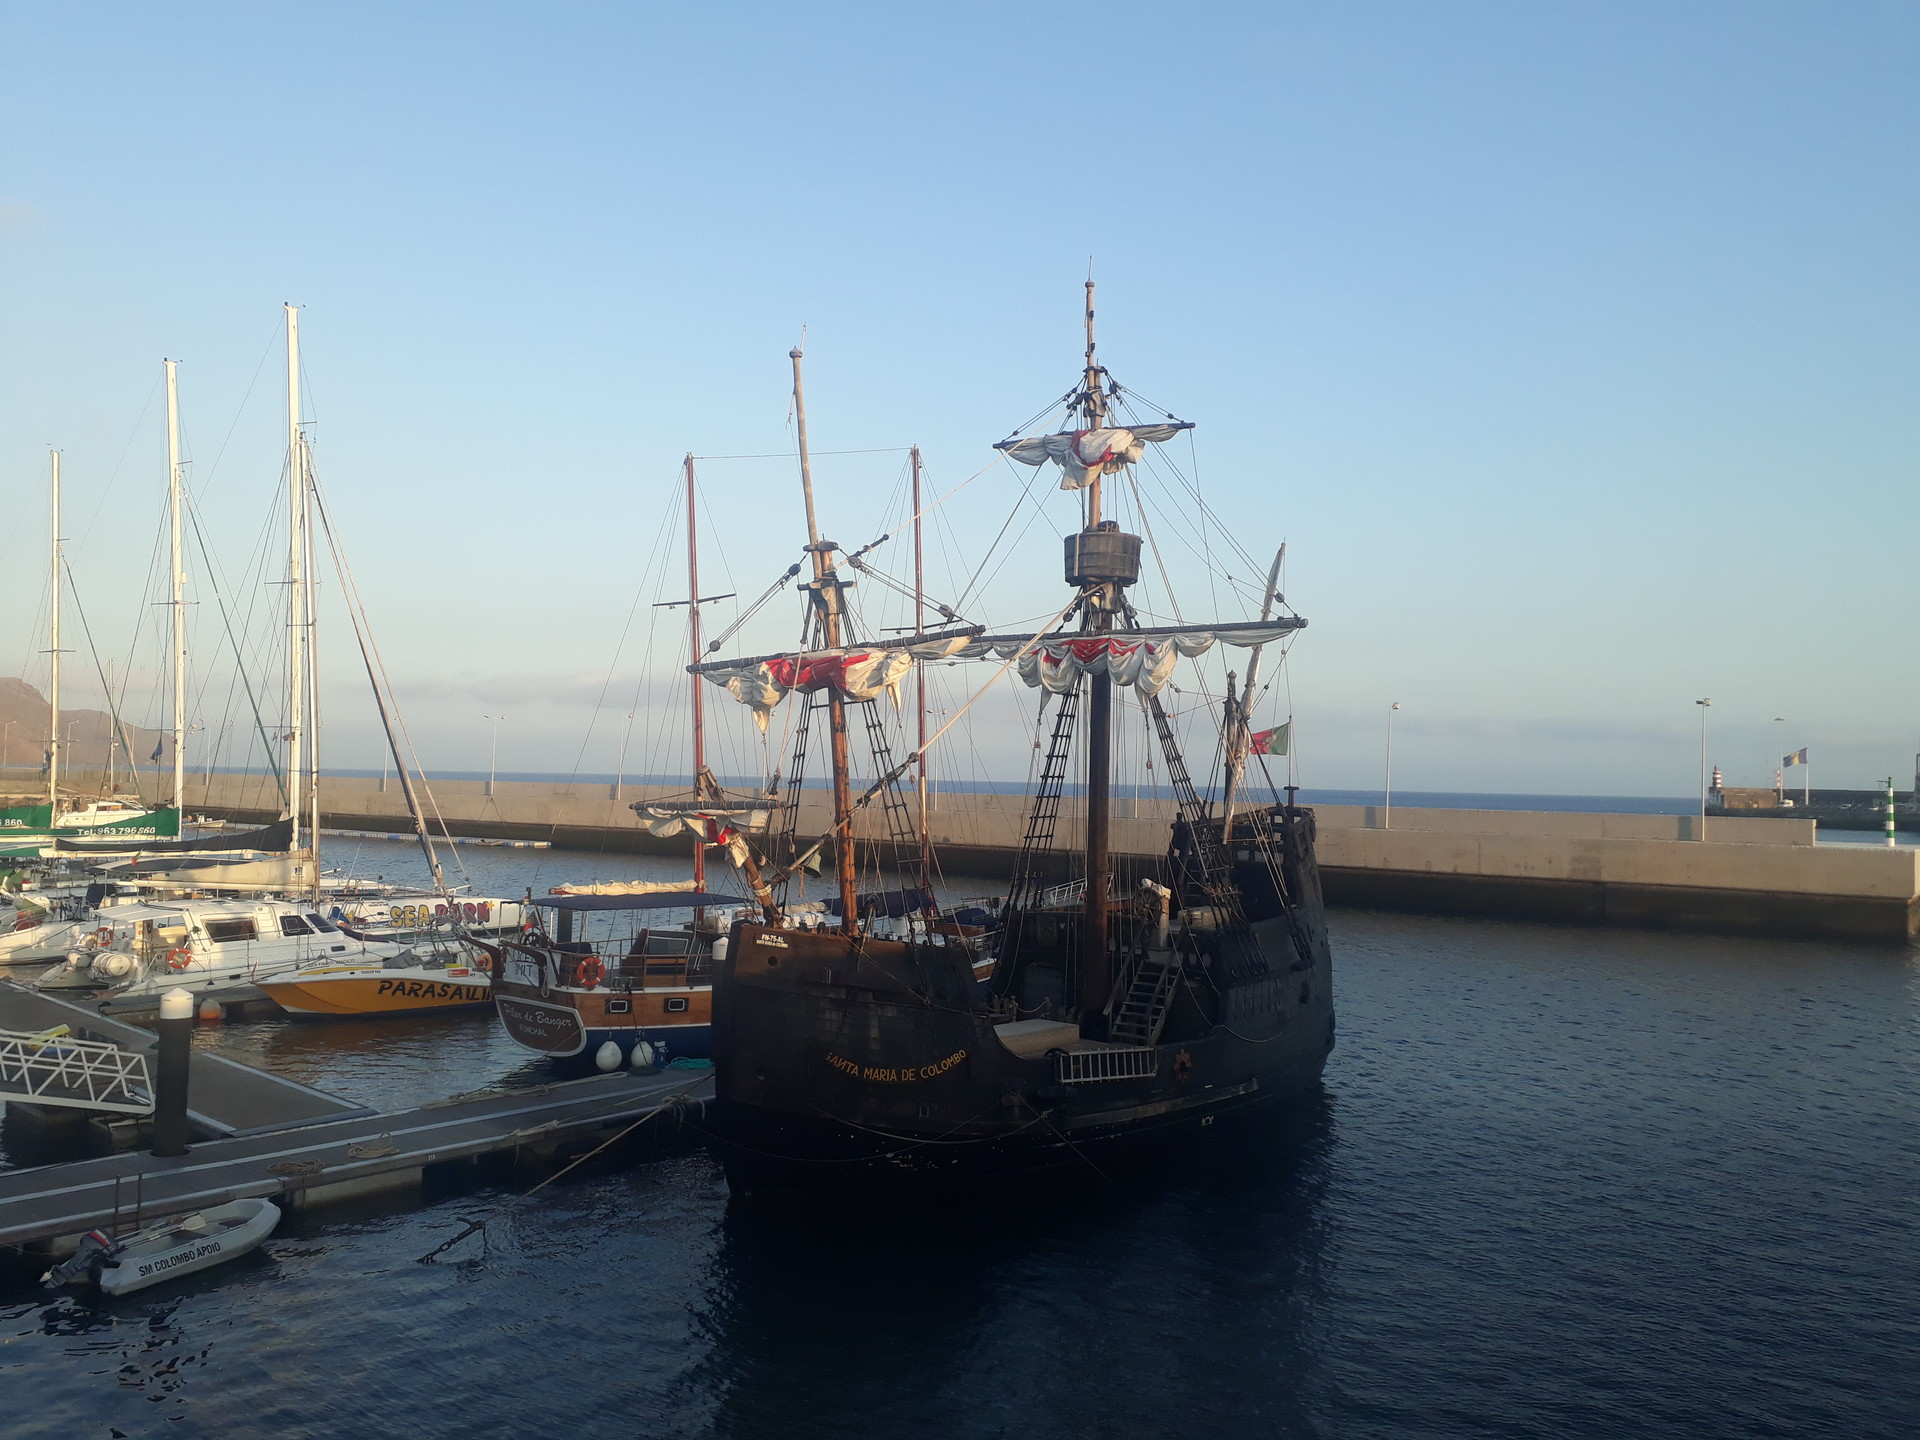 What to do in Funchal for free - the last part